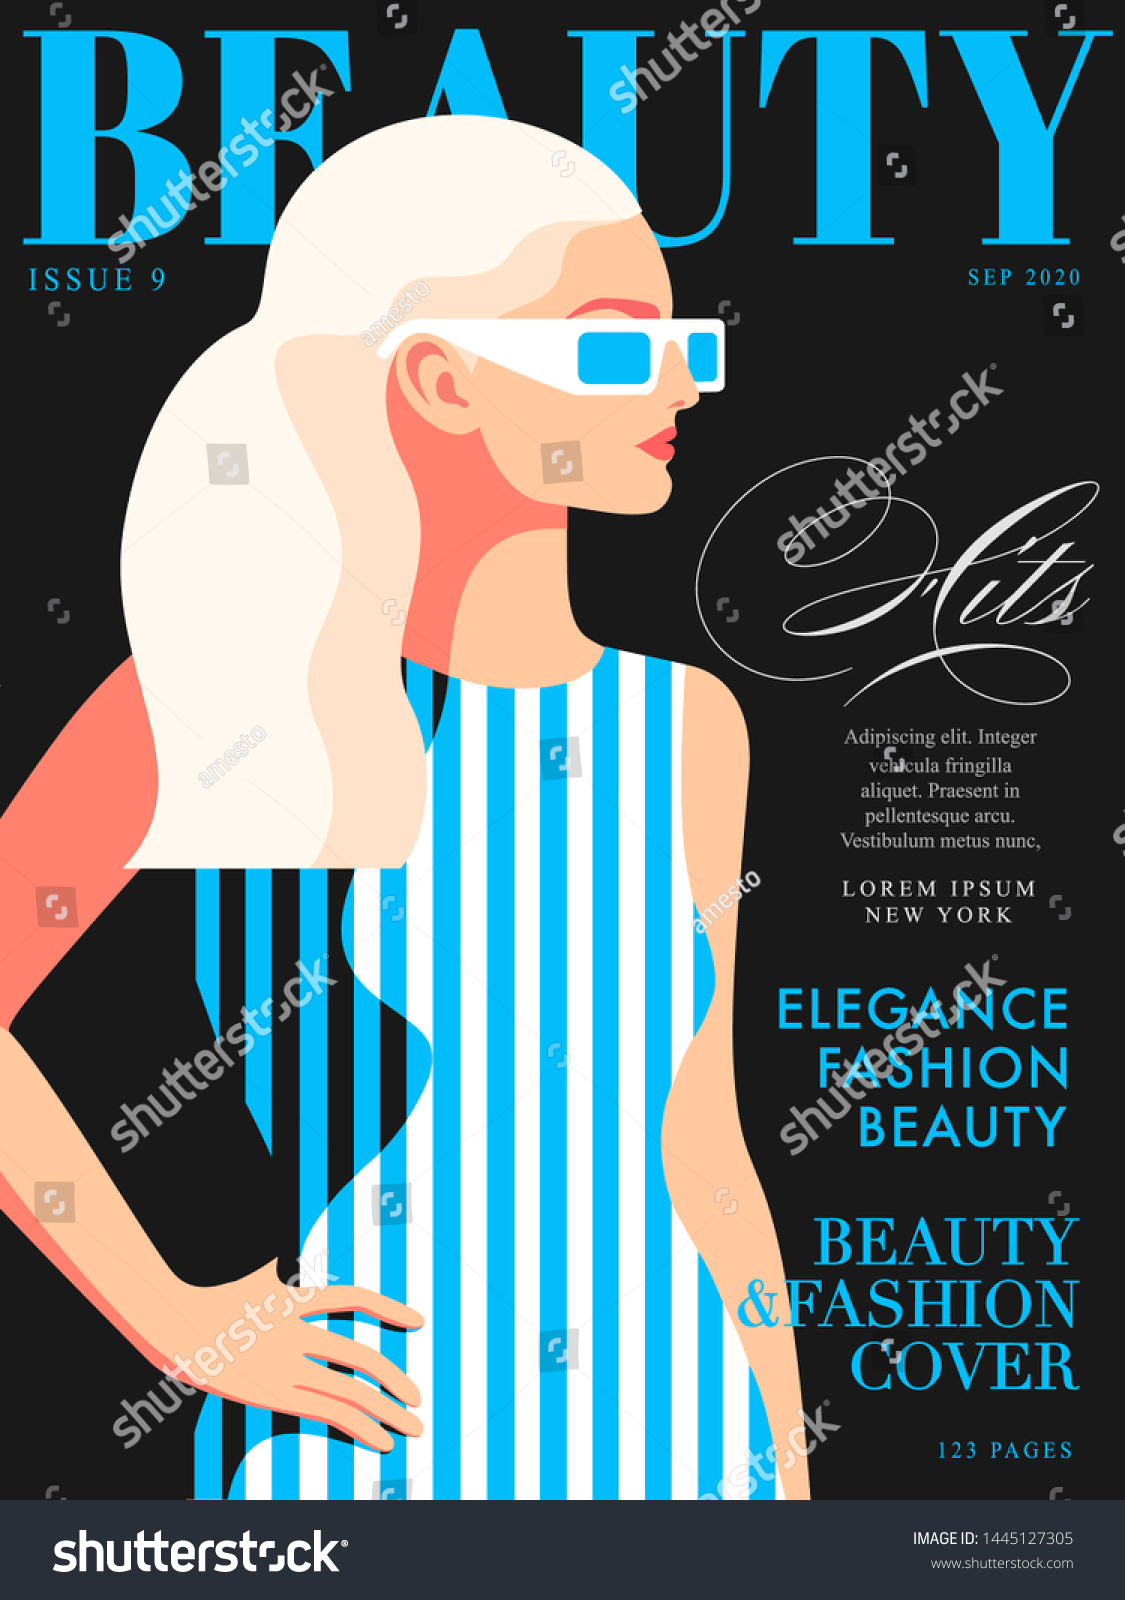 Woman Fashion Magazine Cover Design Blonde Stock Vector Royalty Free 1445127305